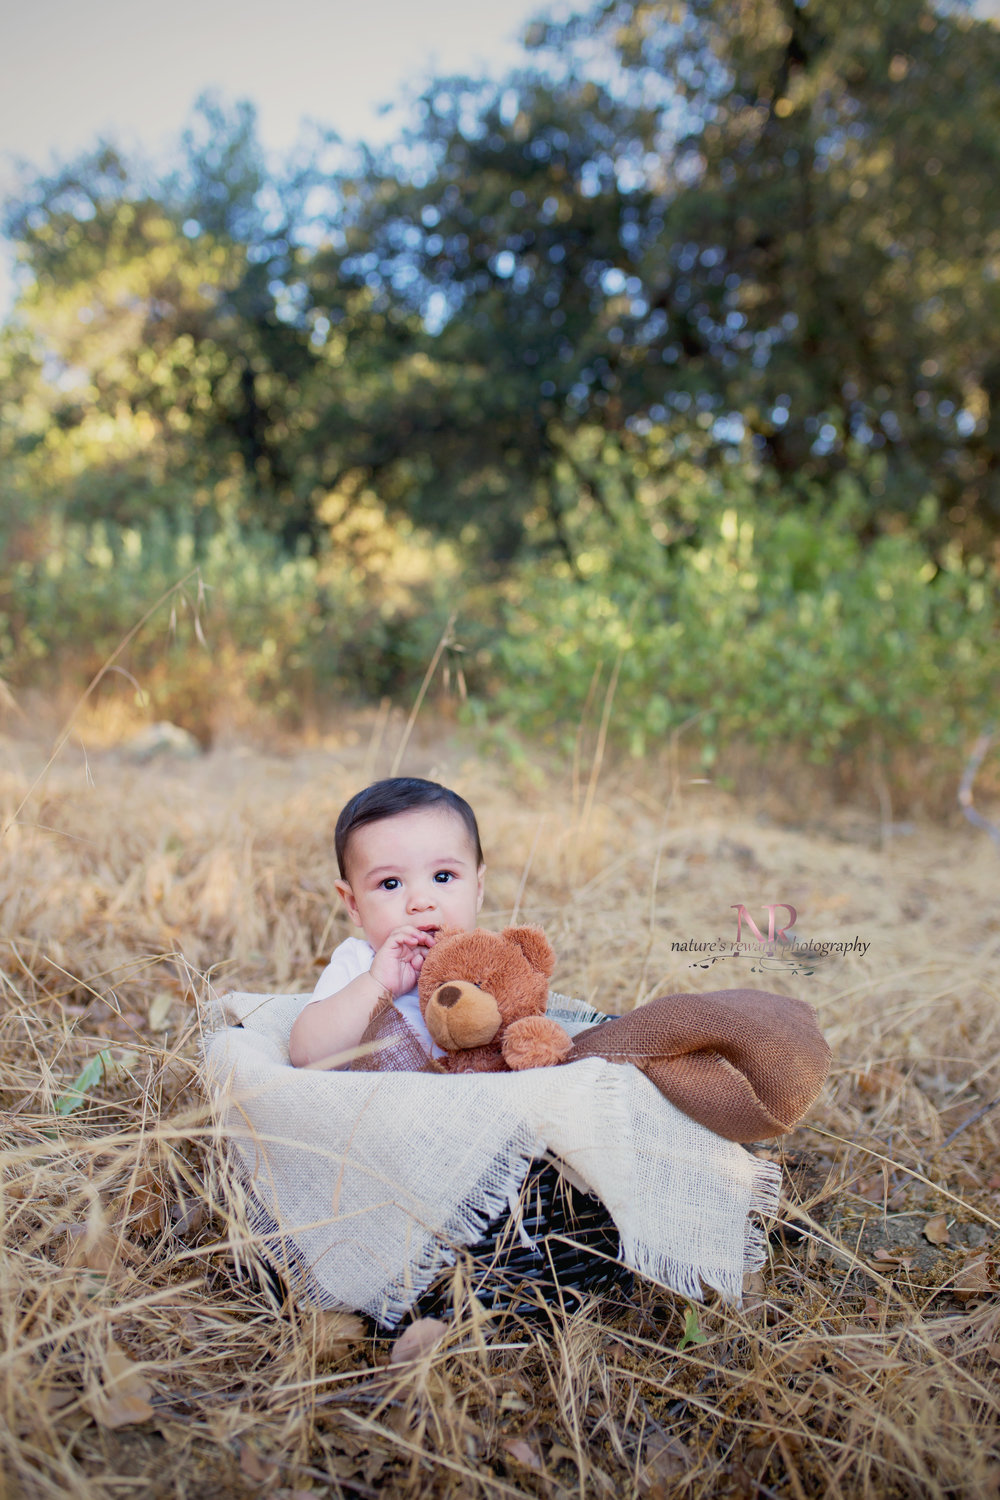 He is so darling- this 6 month baby in a basket